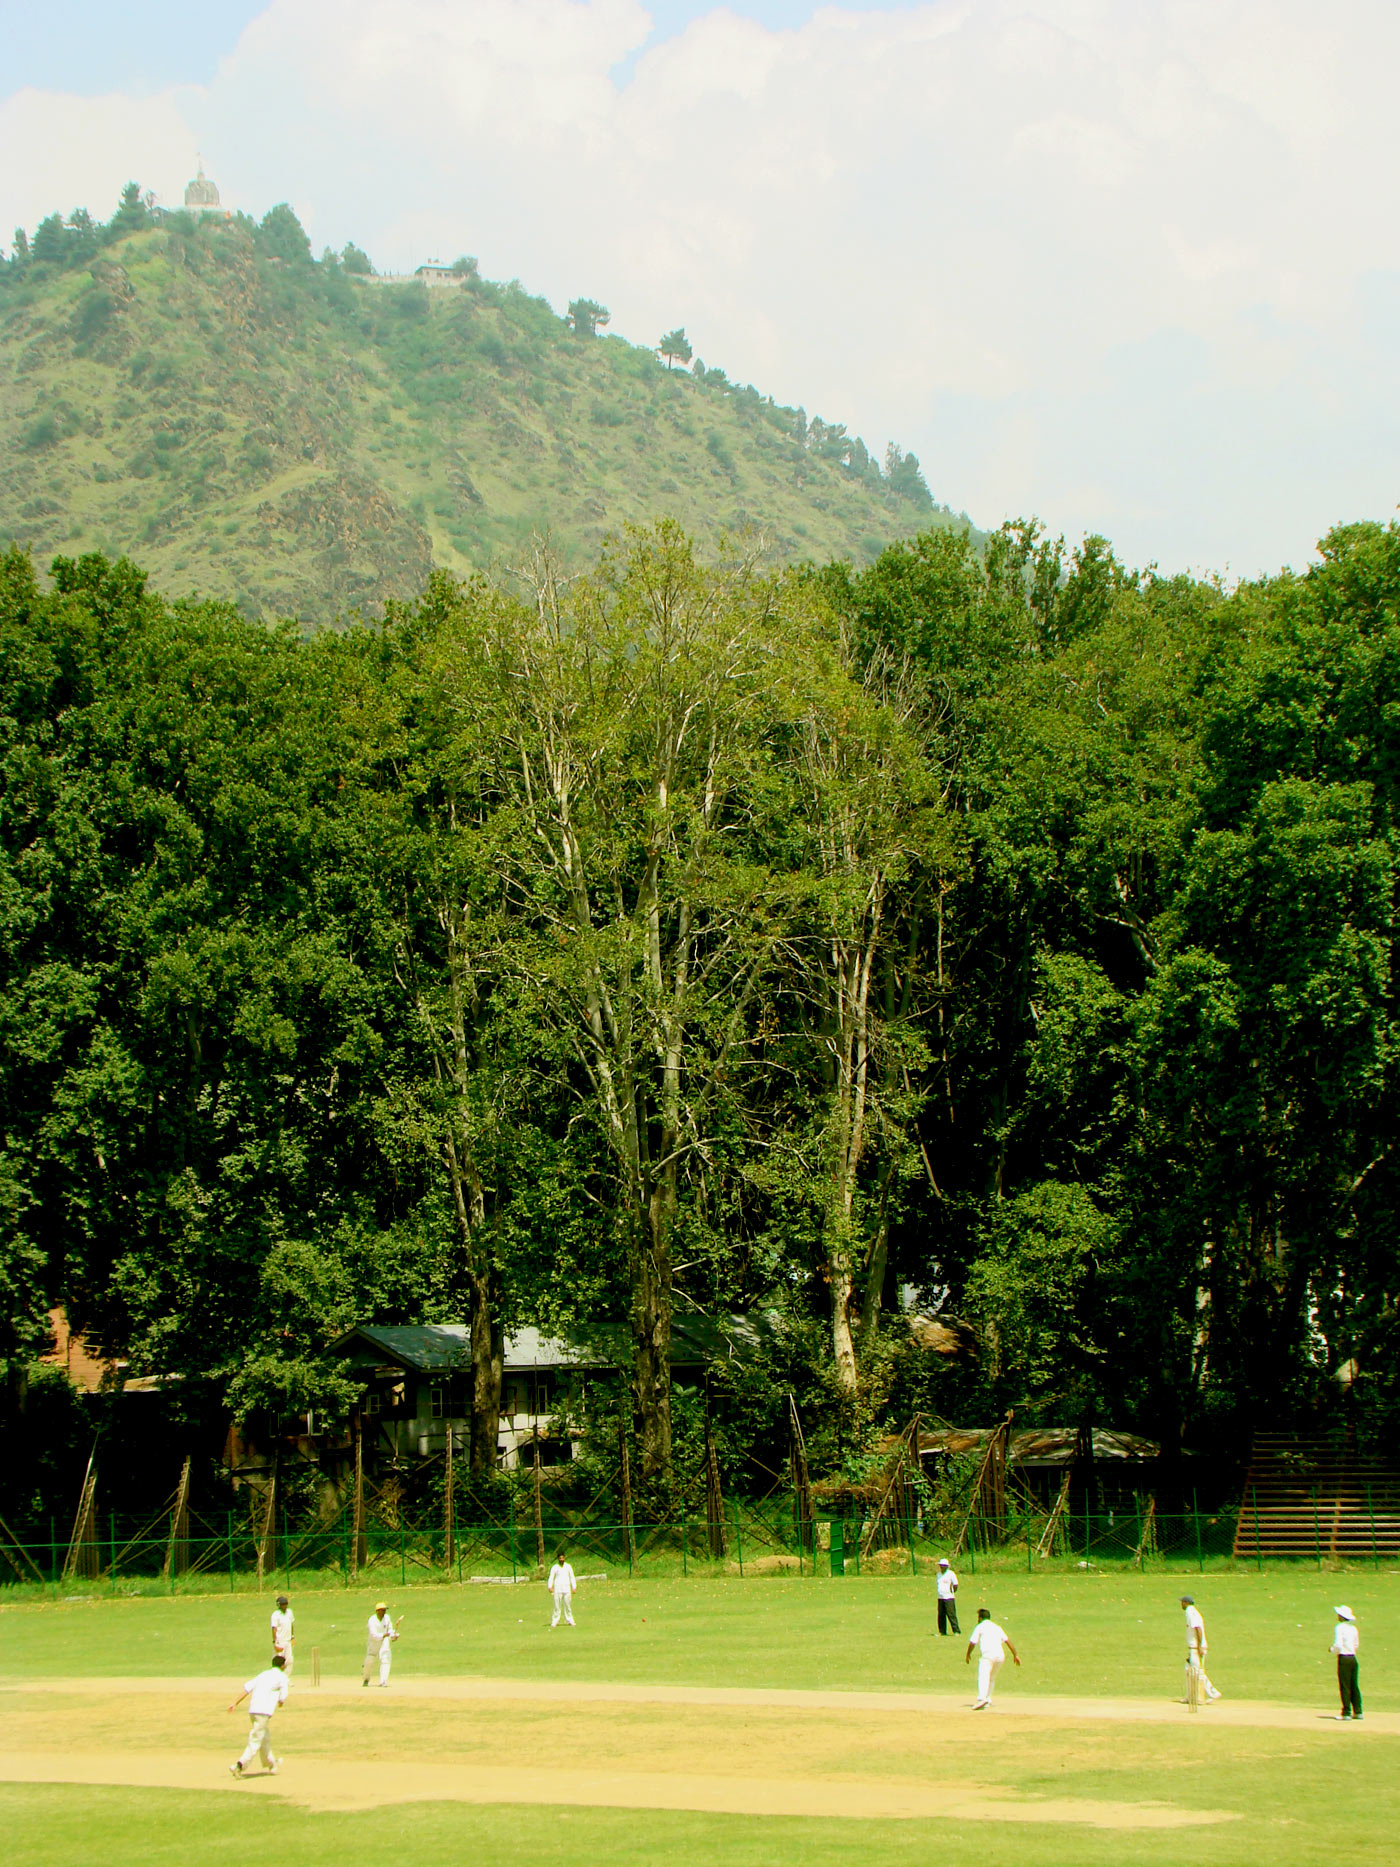 A district selection trial match at the Sher-i-Kashmir a month before the floods turned the ground into a lake